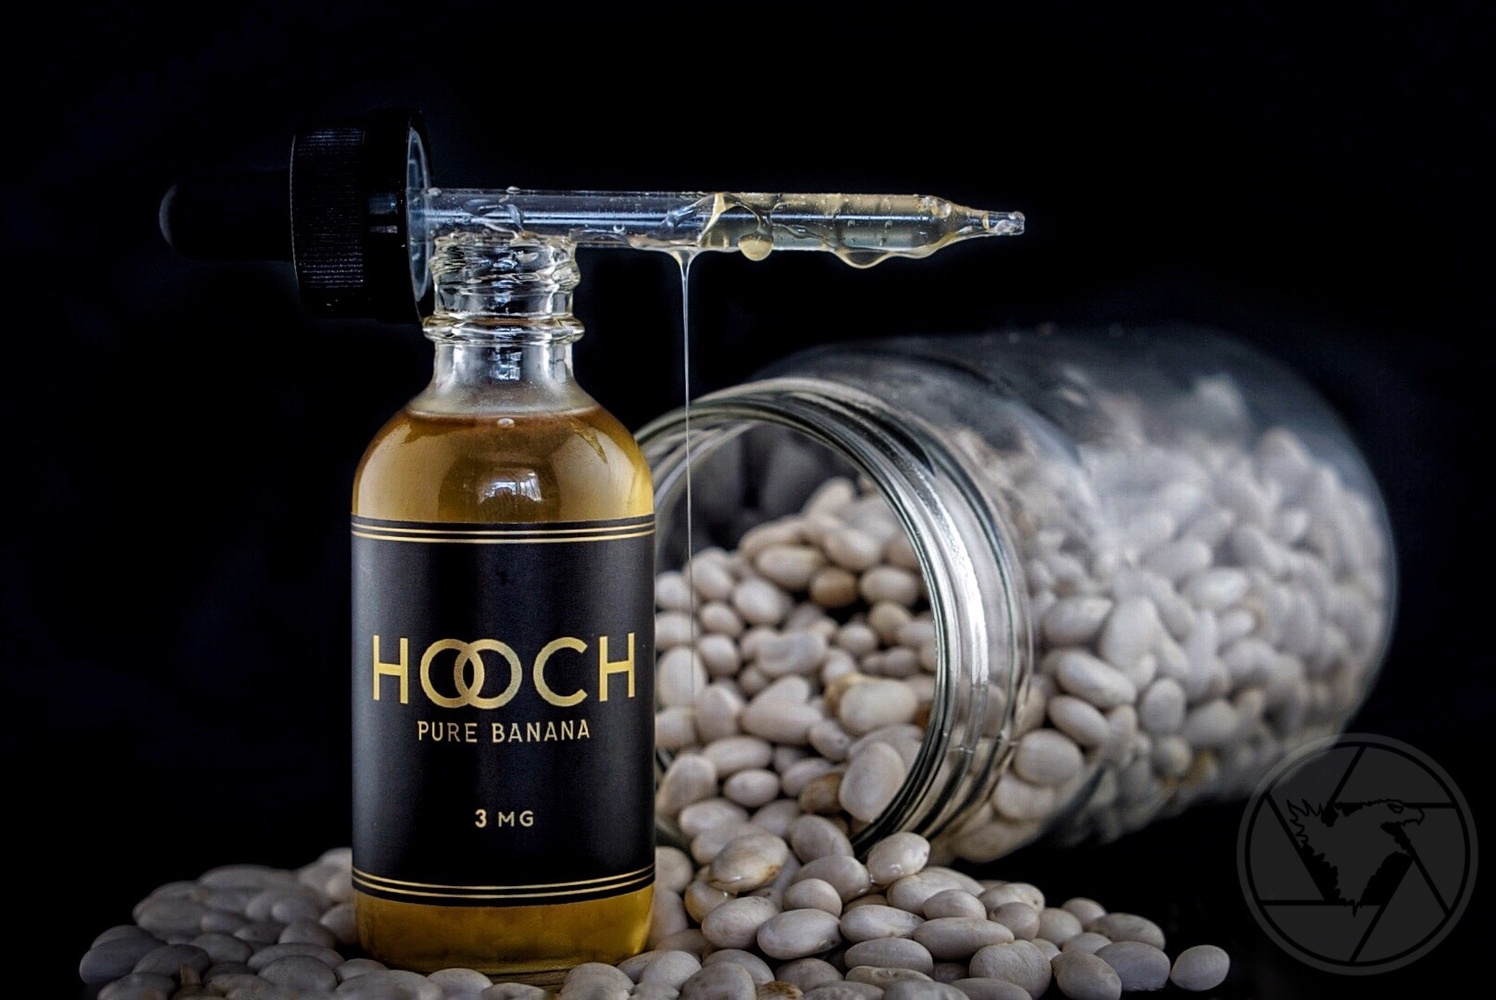 Hooch: Pure Banana from Goldleaf Drip by Kris Rahl